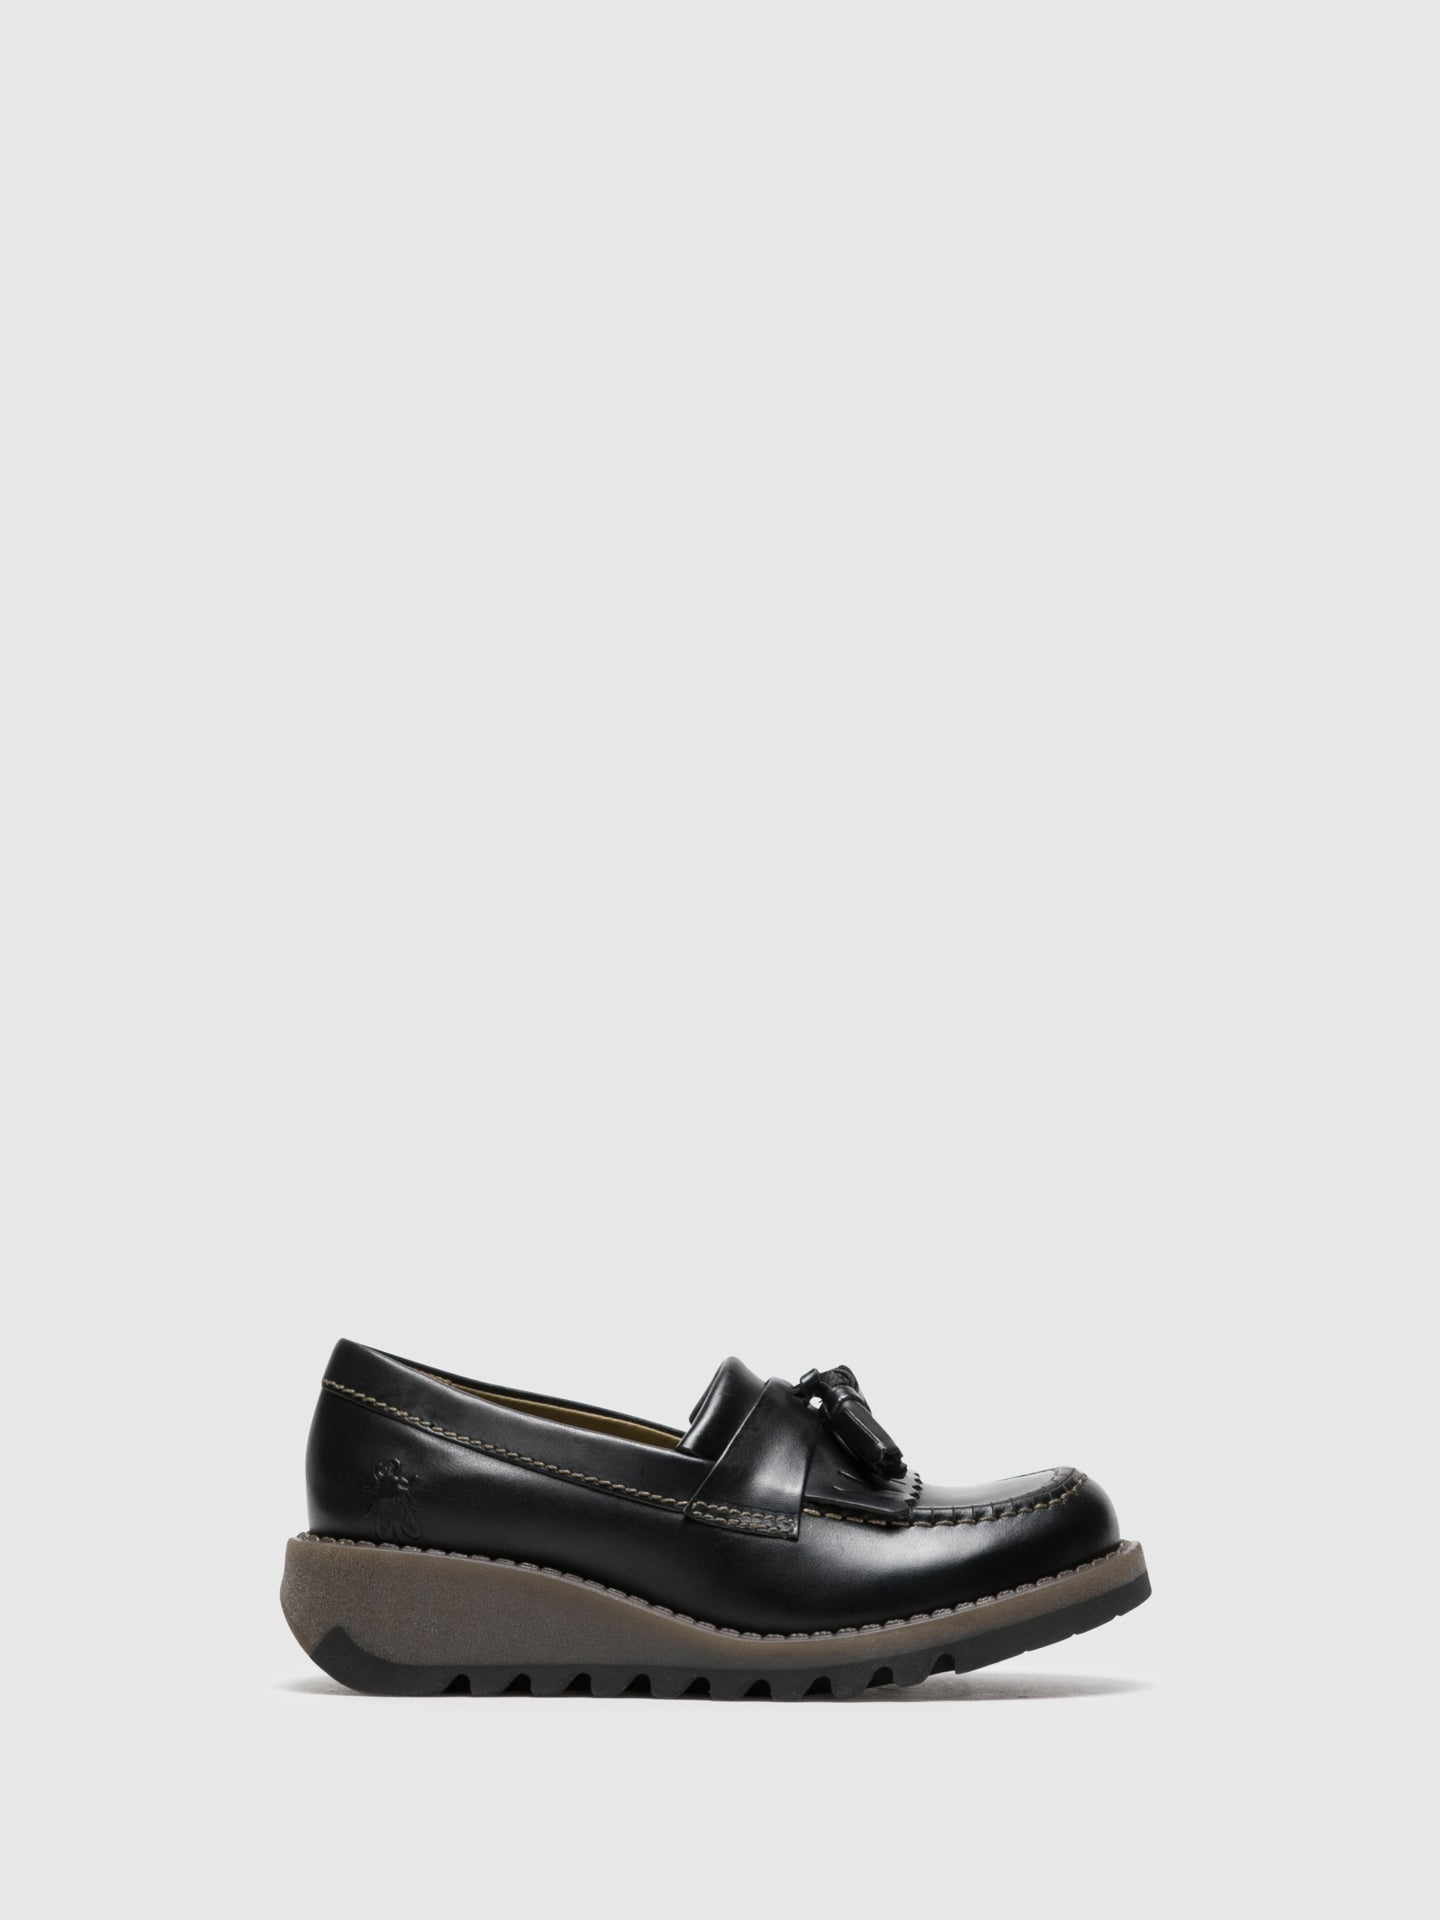 Fly London Sapatos Loafer em Preto Carvão